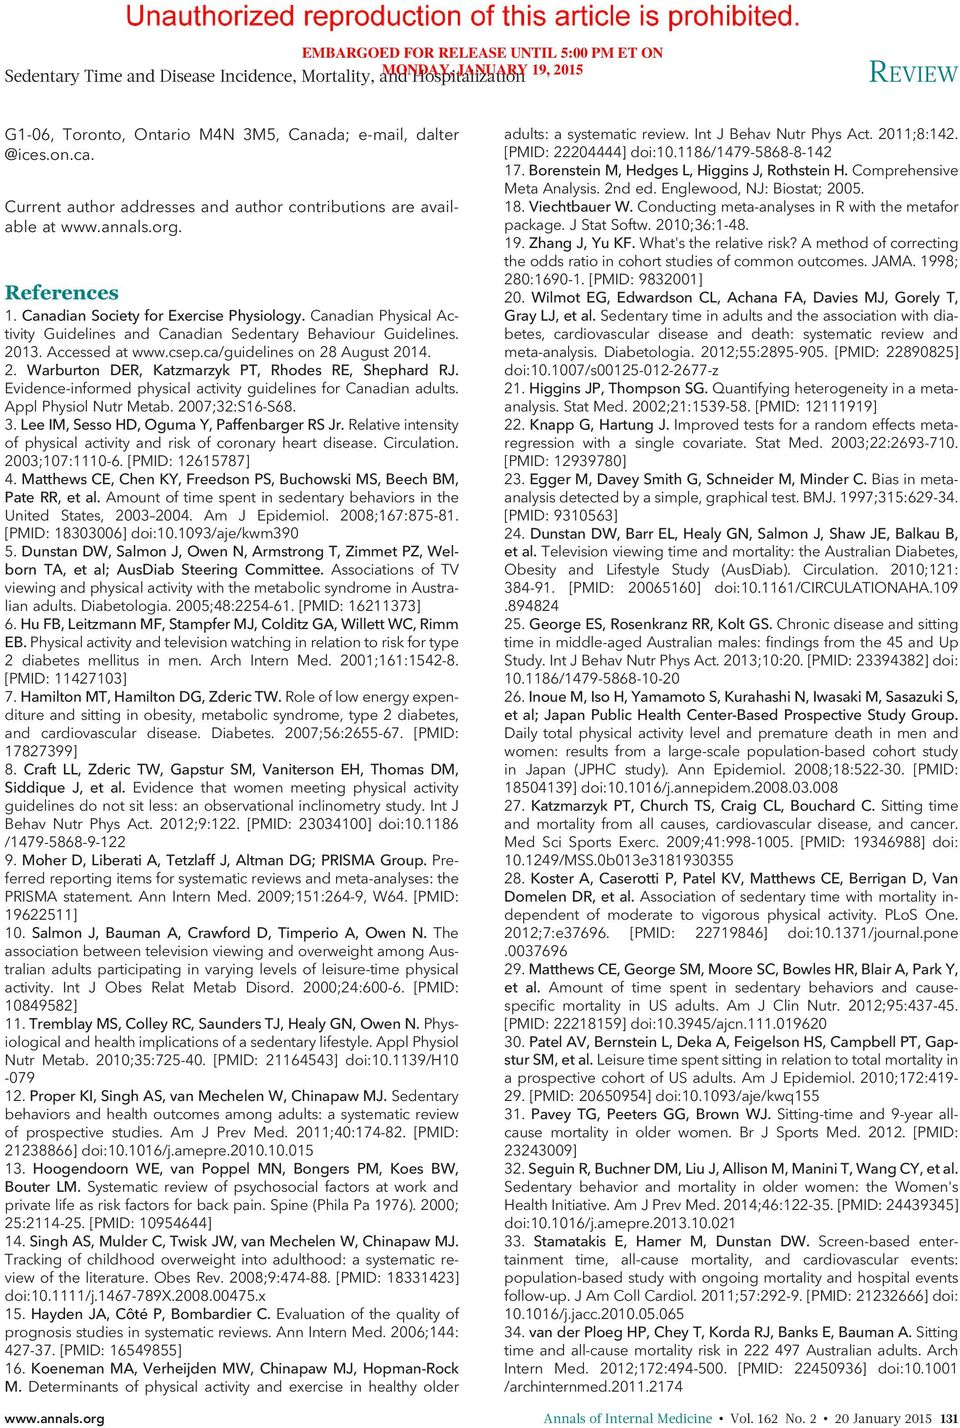 Canadian Physical Activity Guidelines and Canadian Sedentary Behaviour Guidelines. 2013. Accessed at www.csep.ca/guidelines on 28 August 2014. 2. Warburton DER, Katzmarzyk PT, Rhodes RE, Shephard RJ.